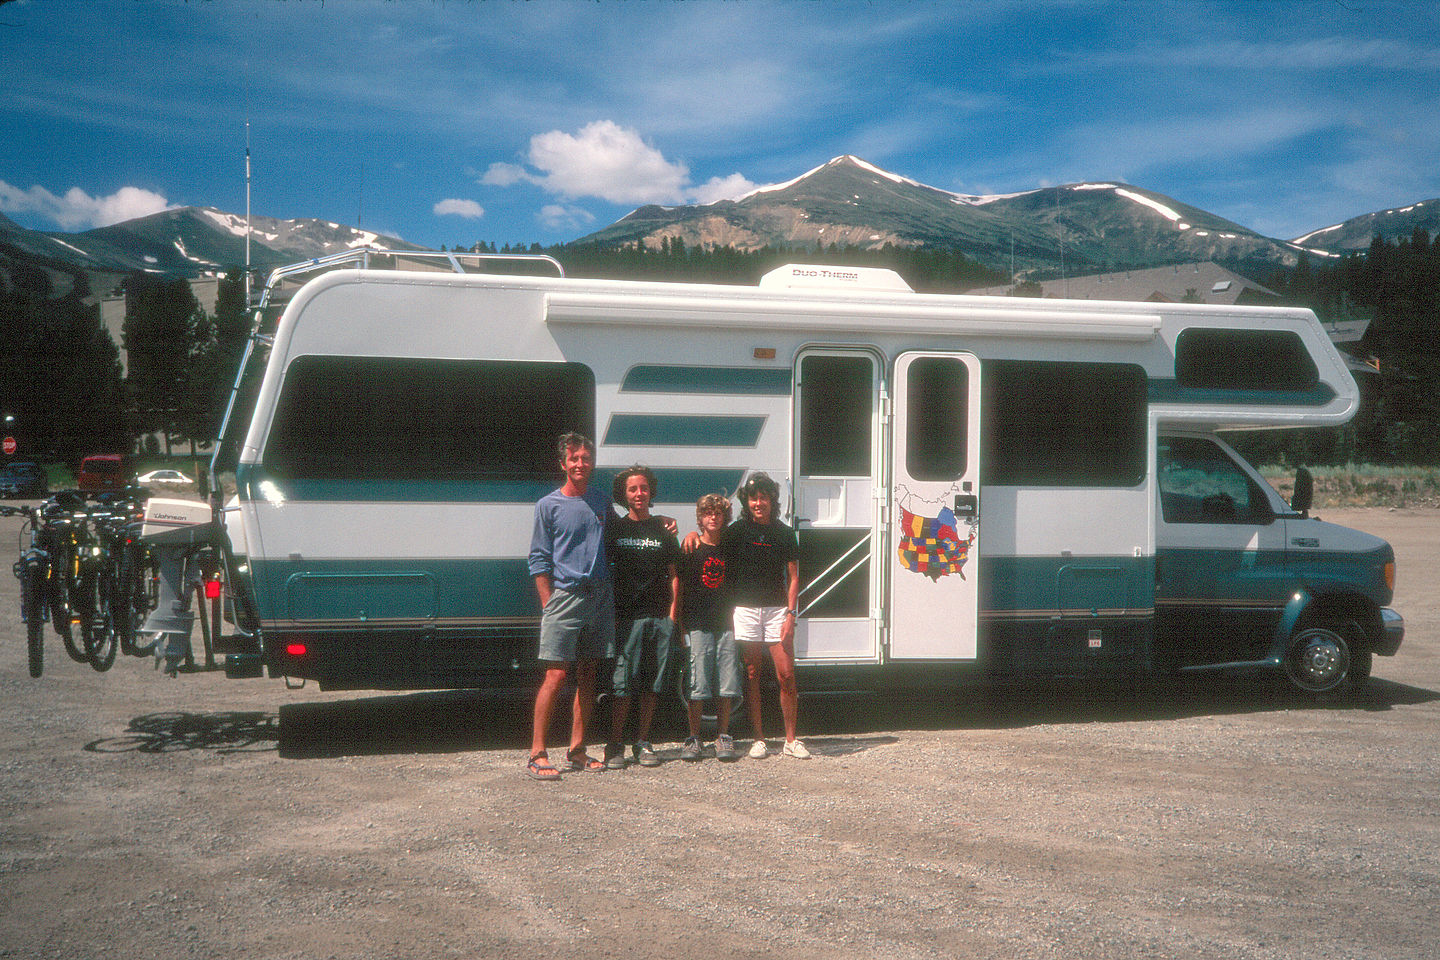 Family RV shot with snowcapped mountains